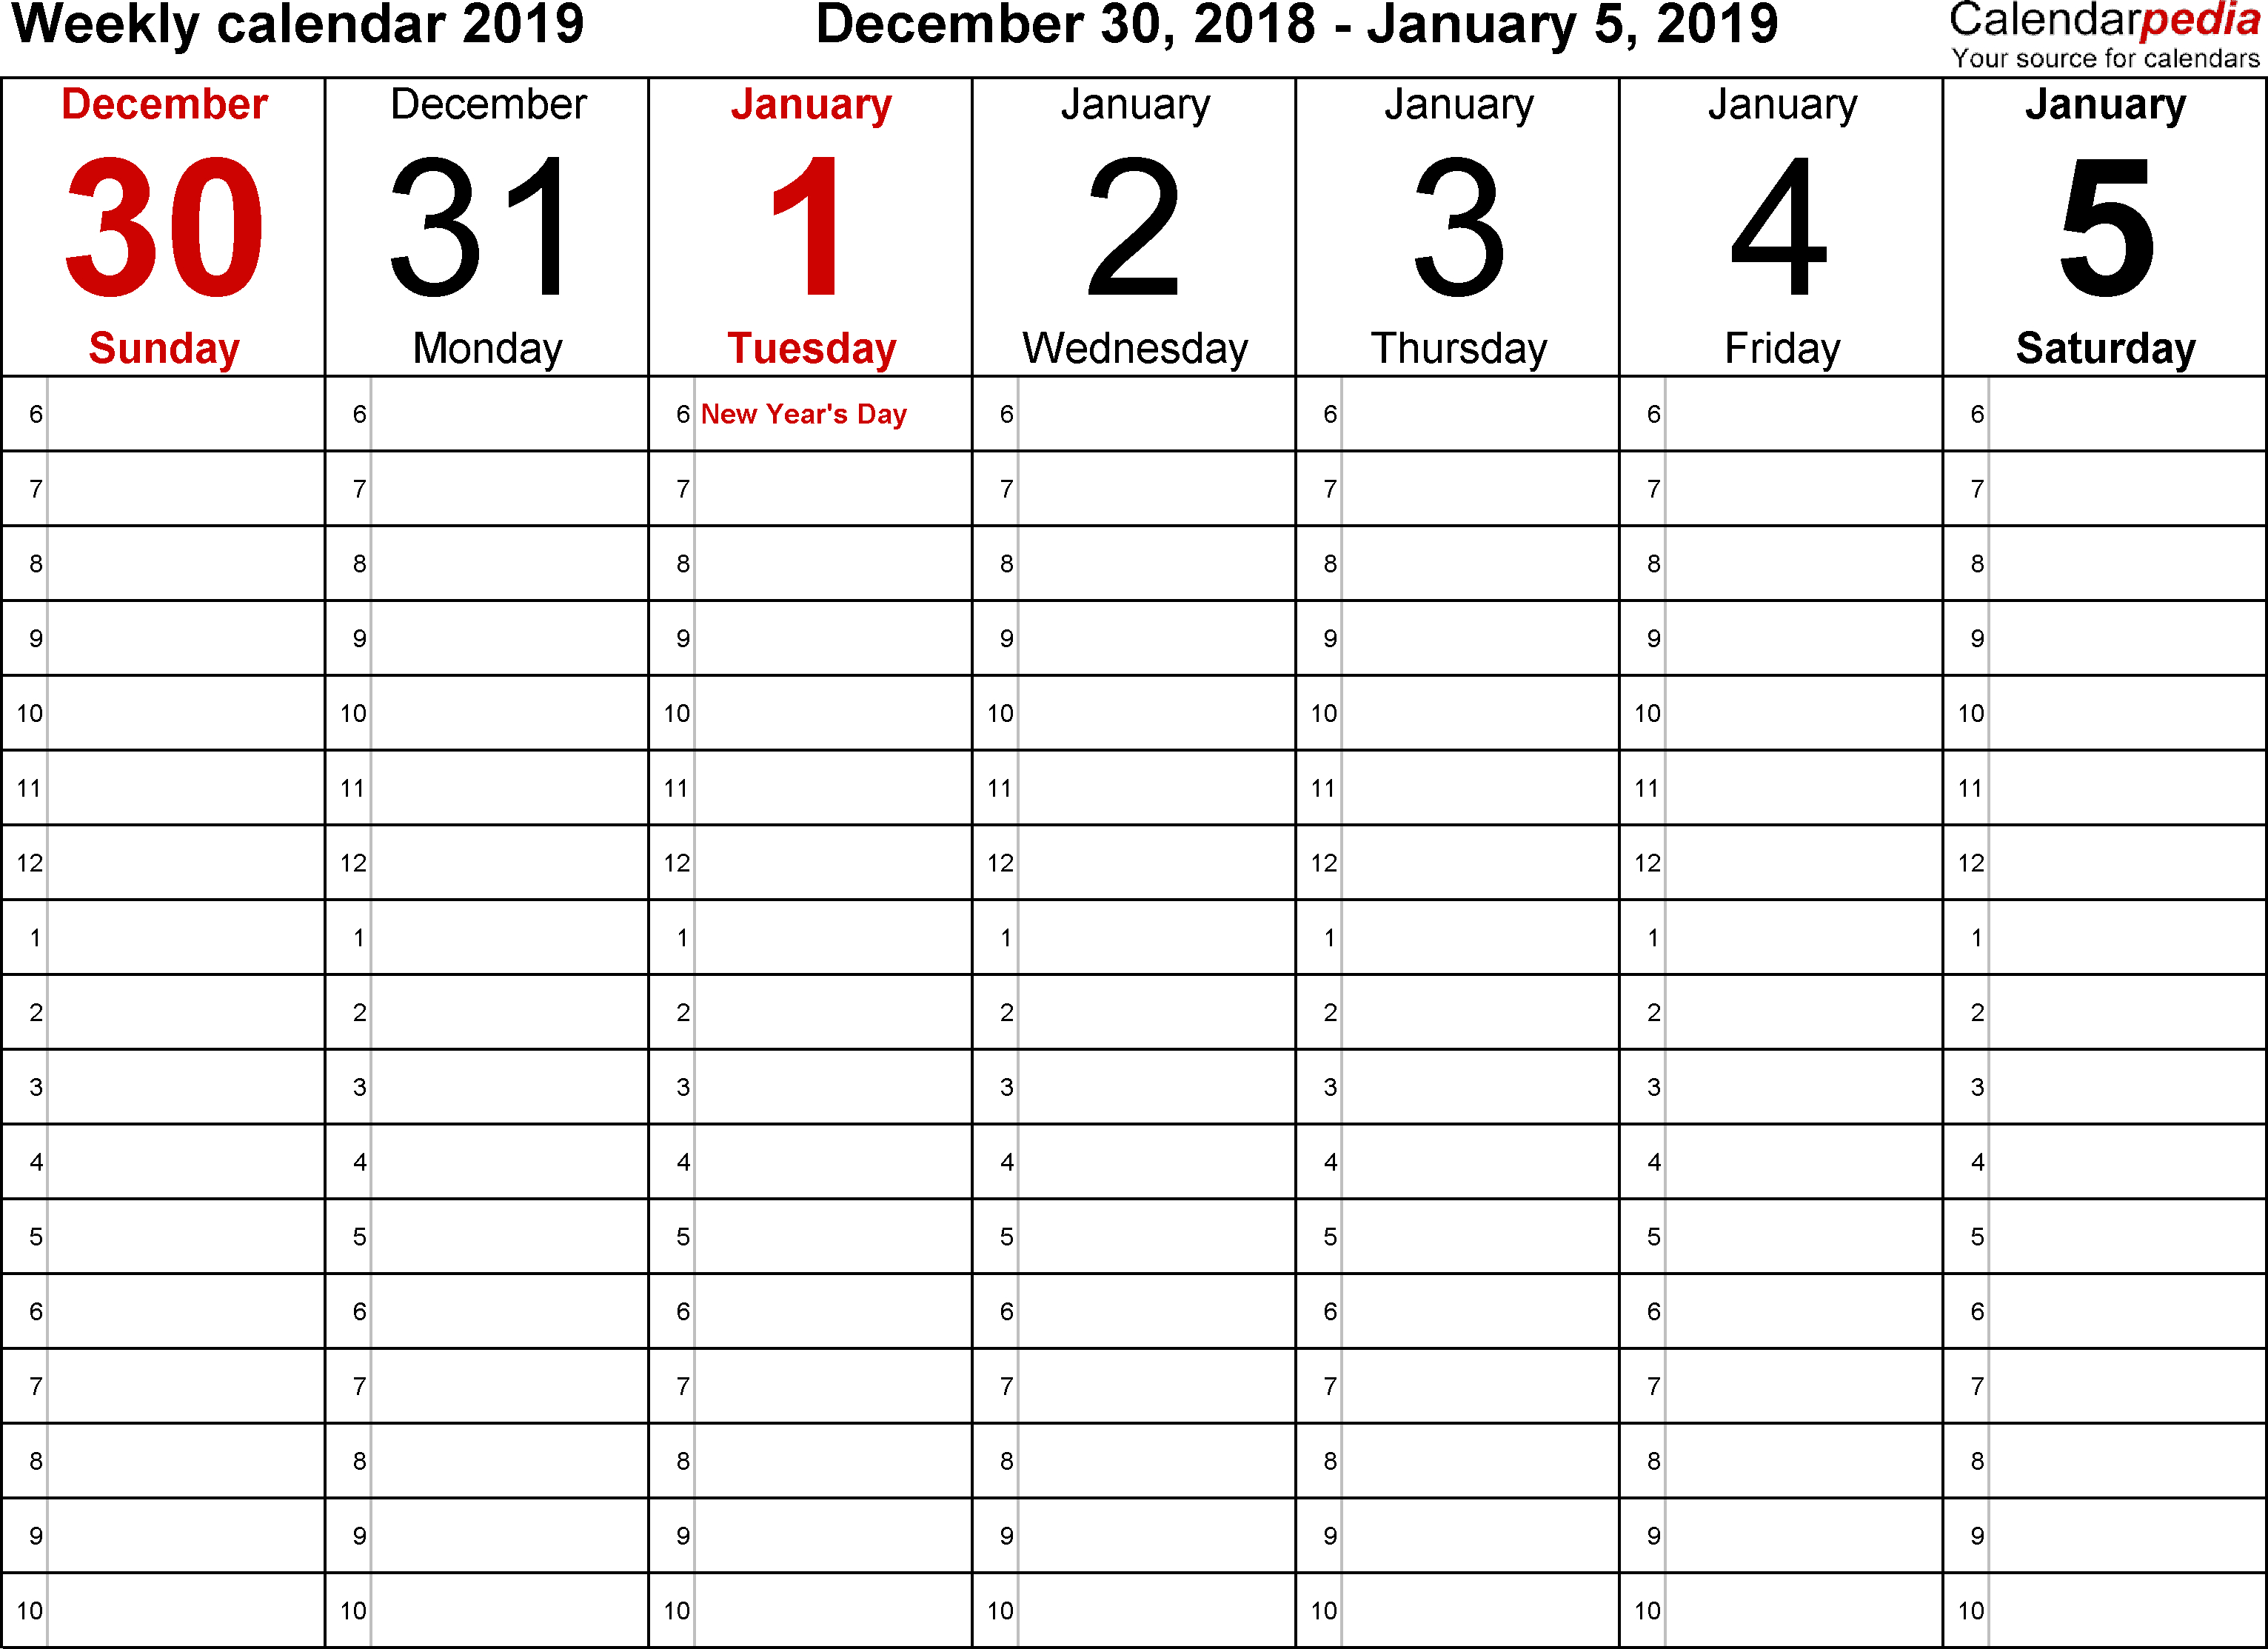 Weekly Calendar 2019 For Word - 12 Free Printable Templates intended for Page A Day Calendar Template